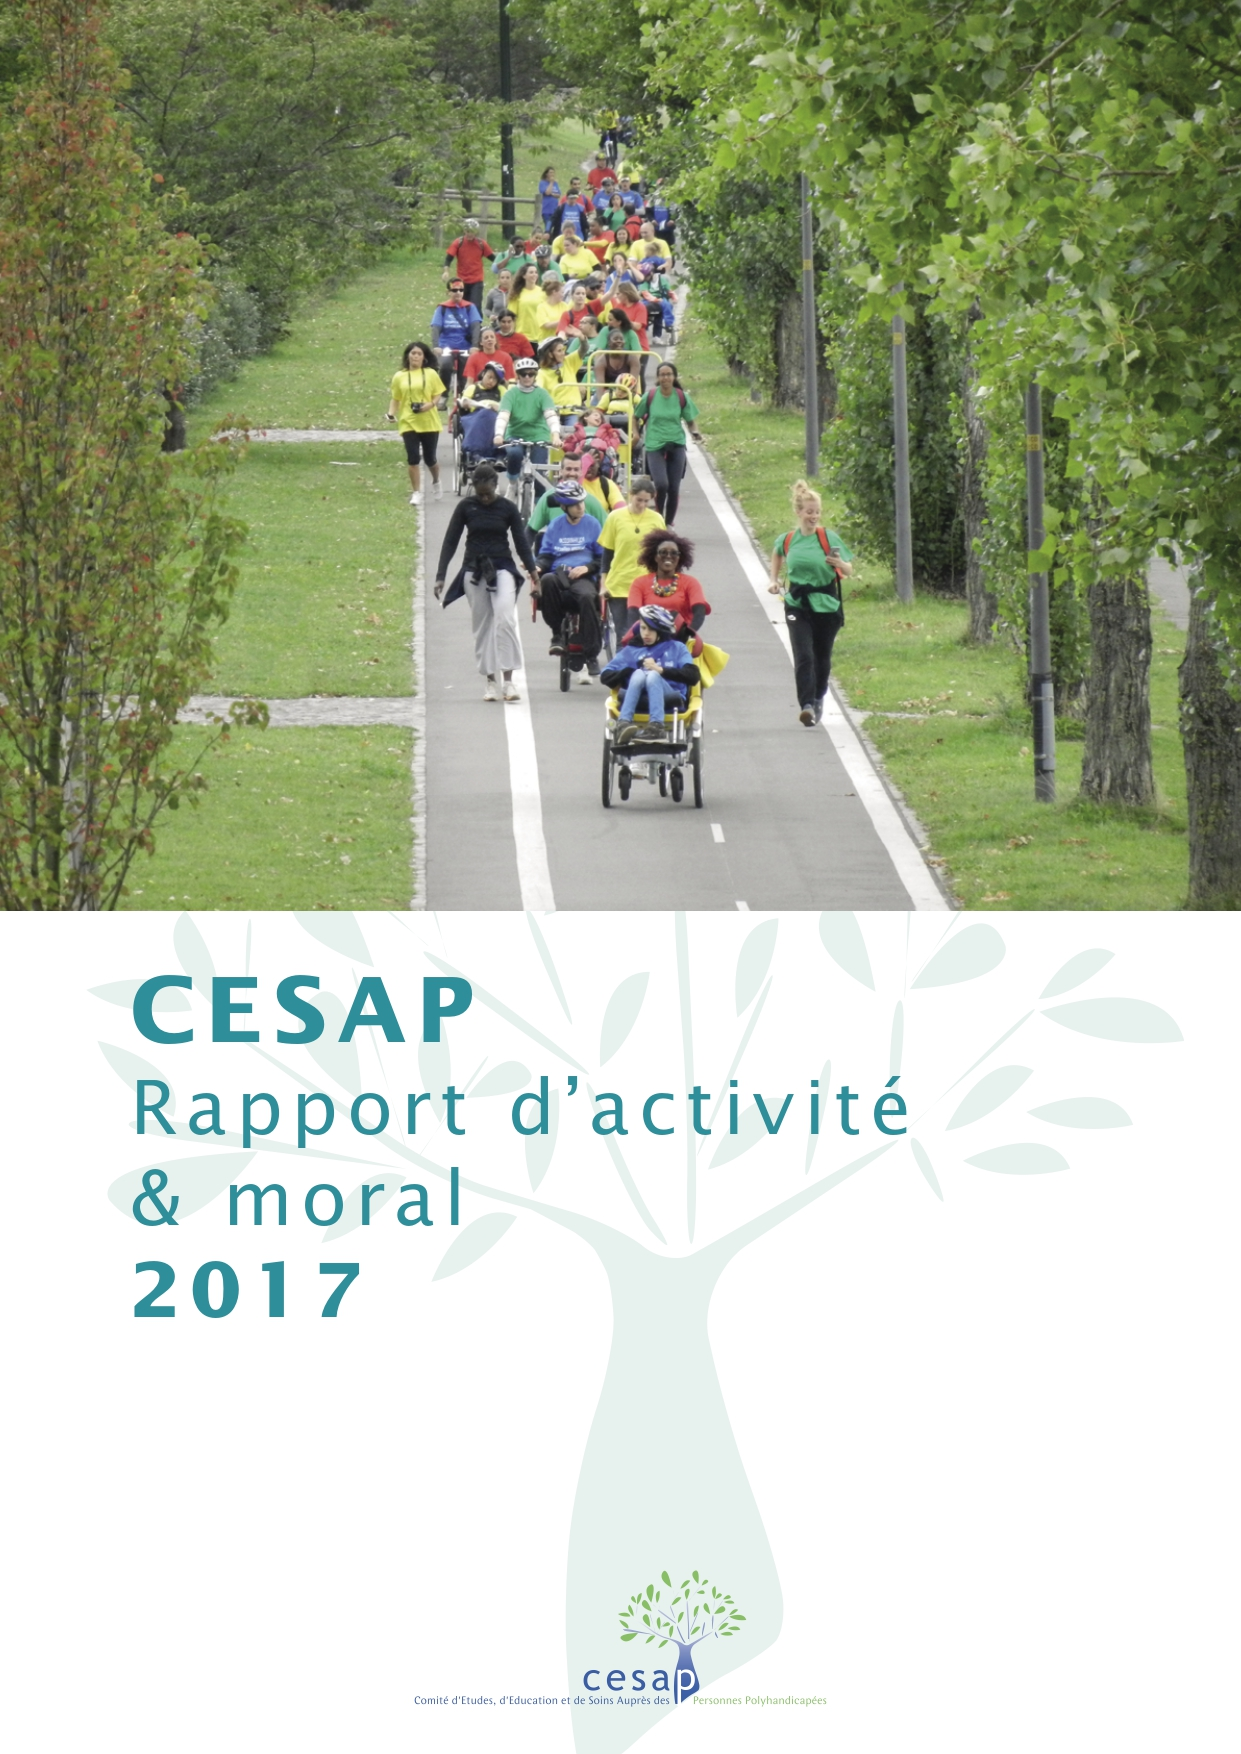 Rapport moral activite 2017-Vdef-couverture page-0001